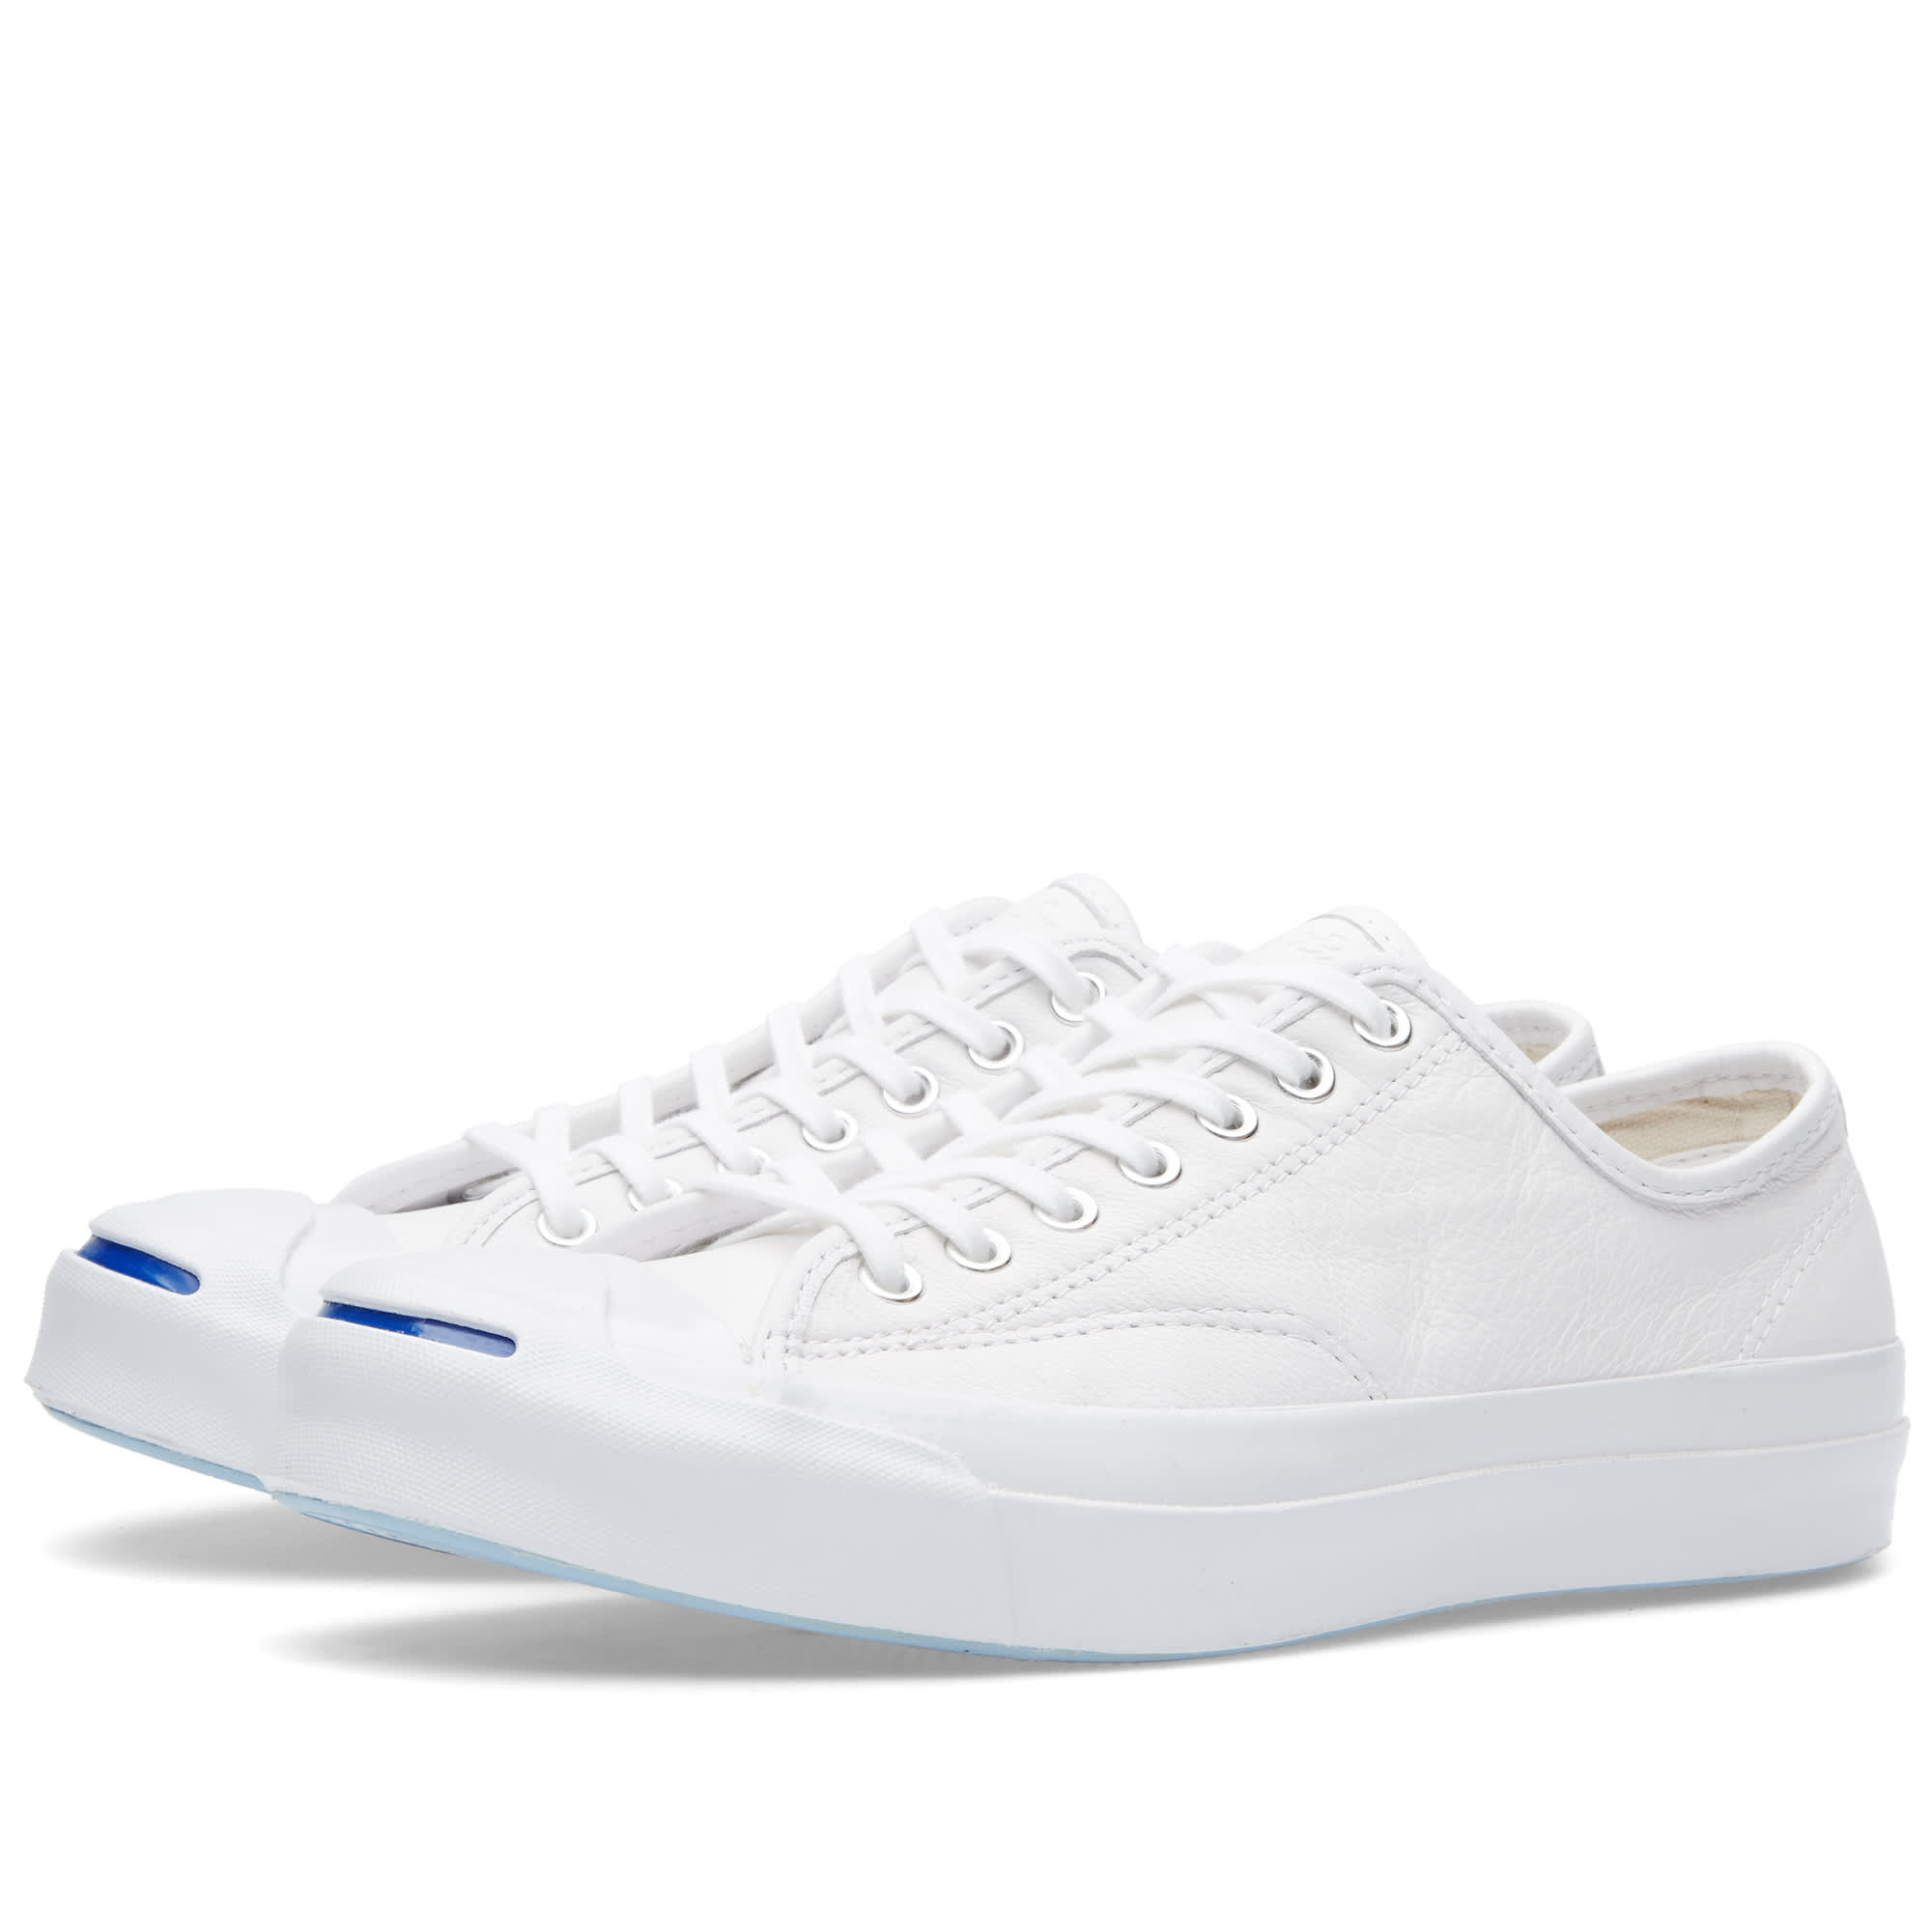 Converse Jack Purcell Signature Leather White Amp White